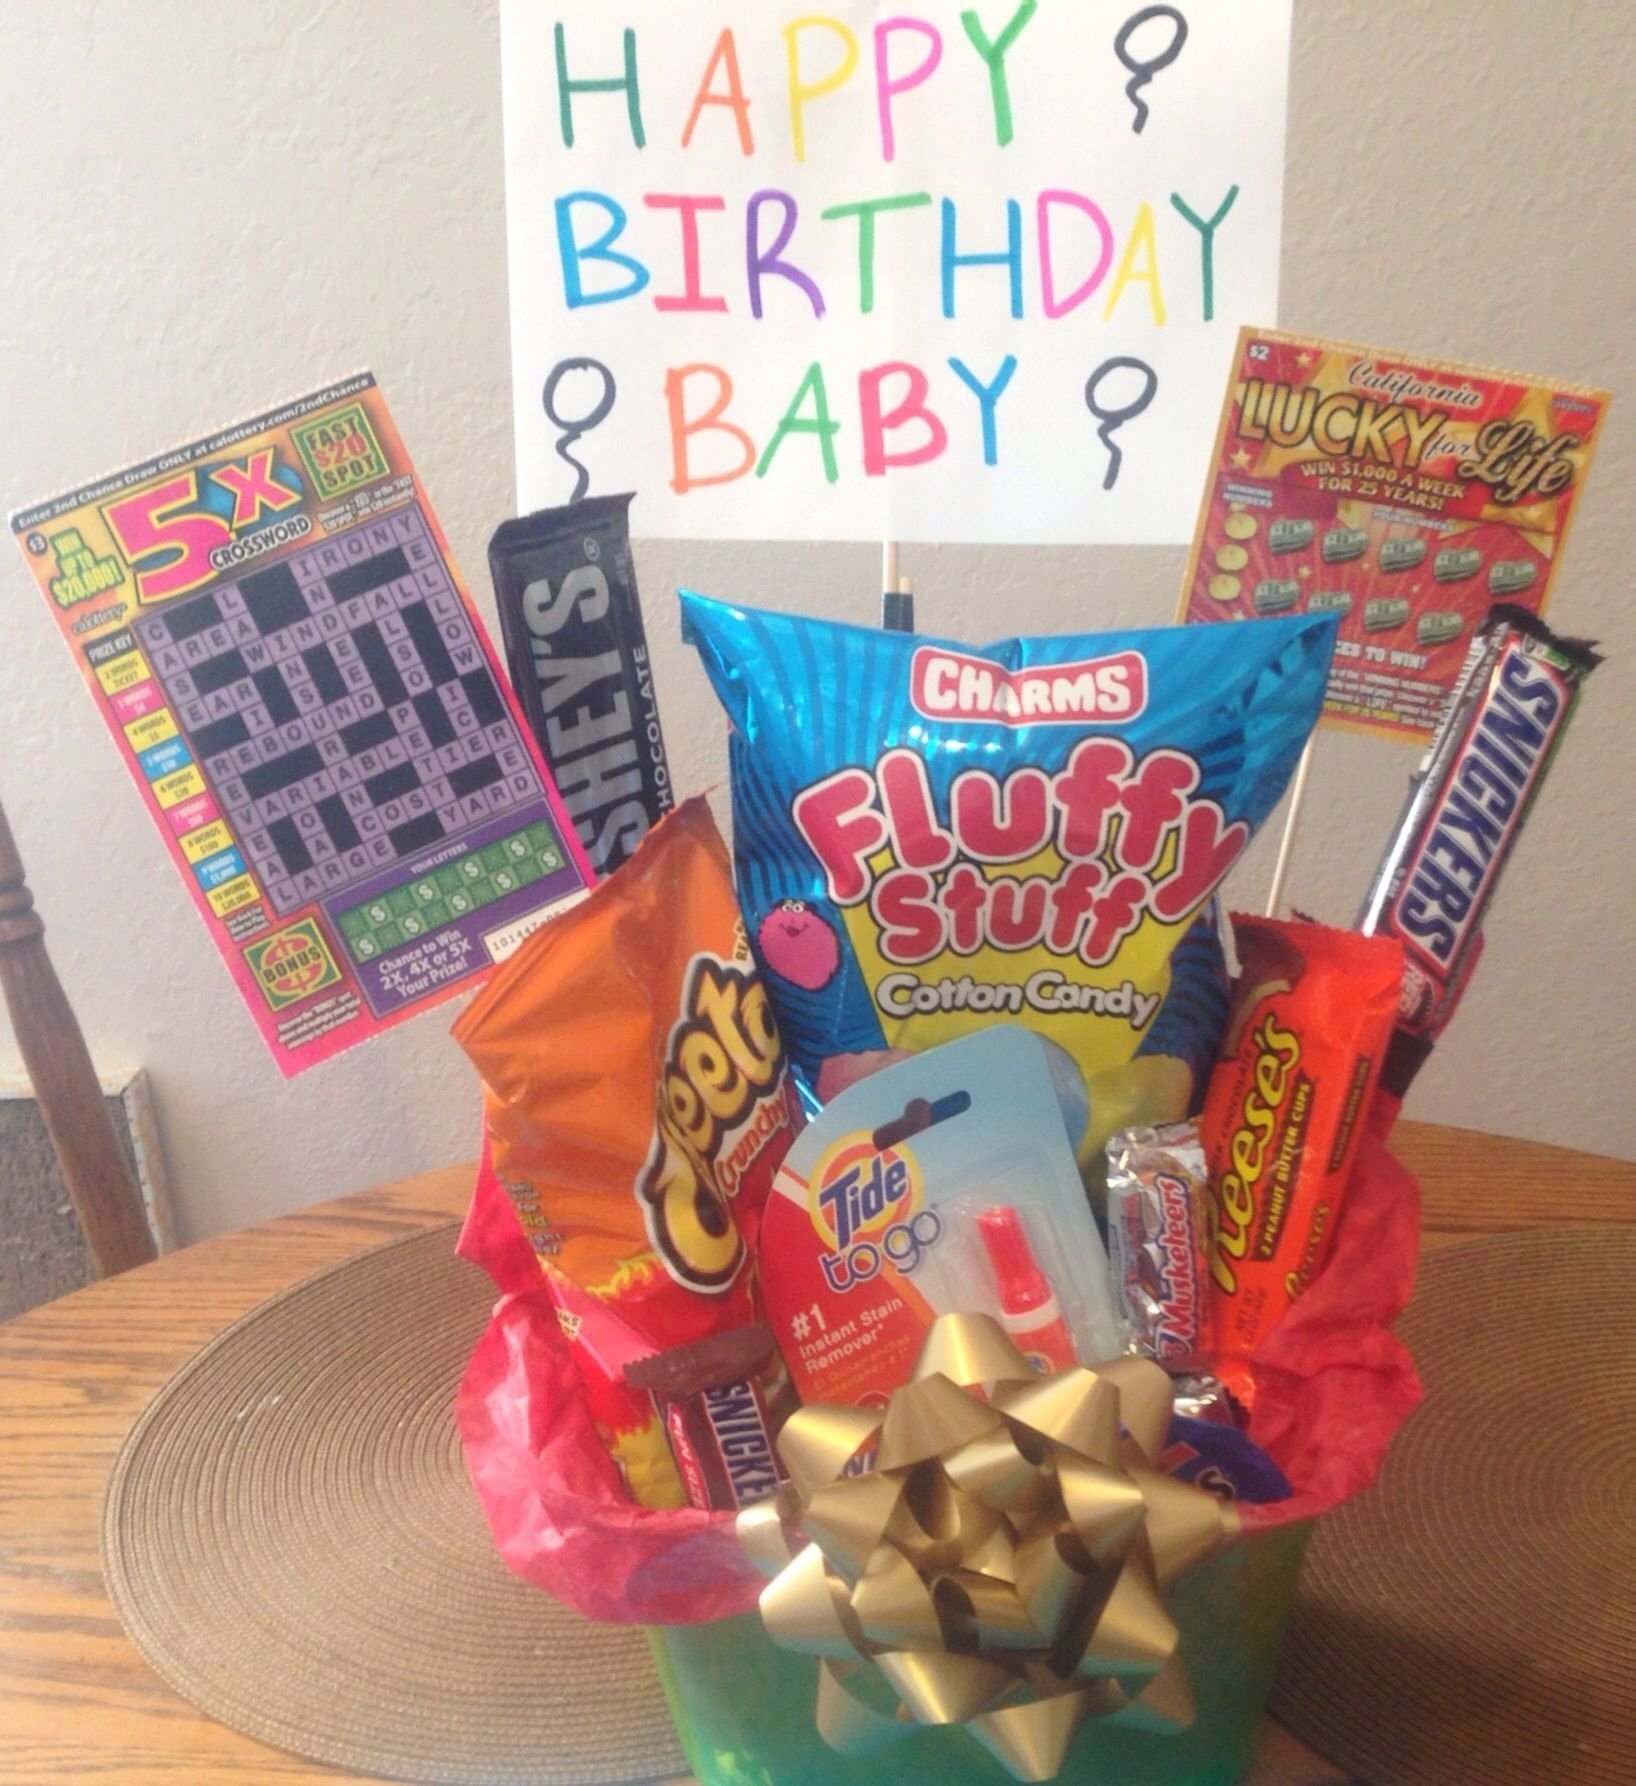 10 Lovely Good Gift Ideas For Your Boyfriend for my boyfriends 22nd birthday my projects pinterest 22 birthday 12 2021